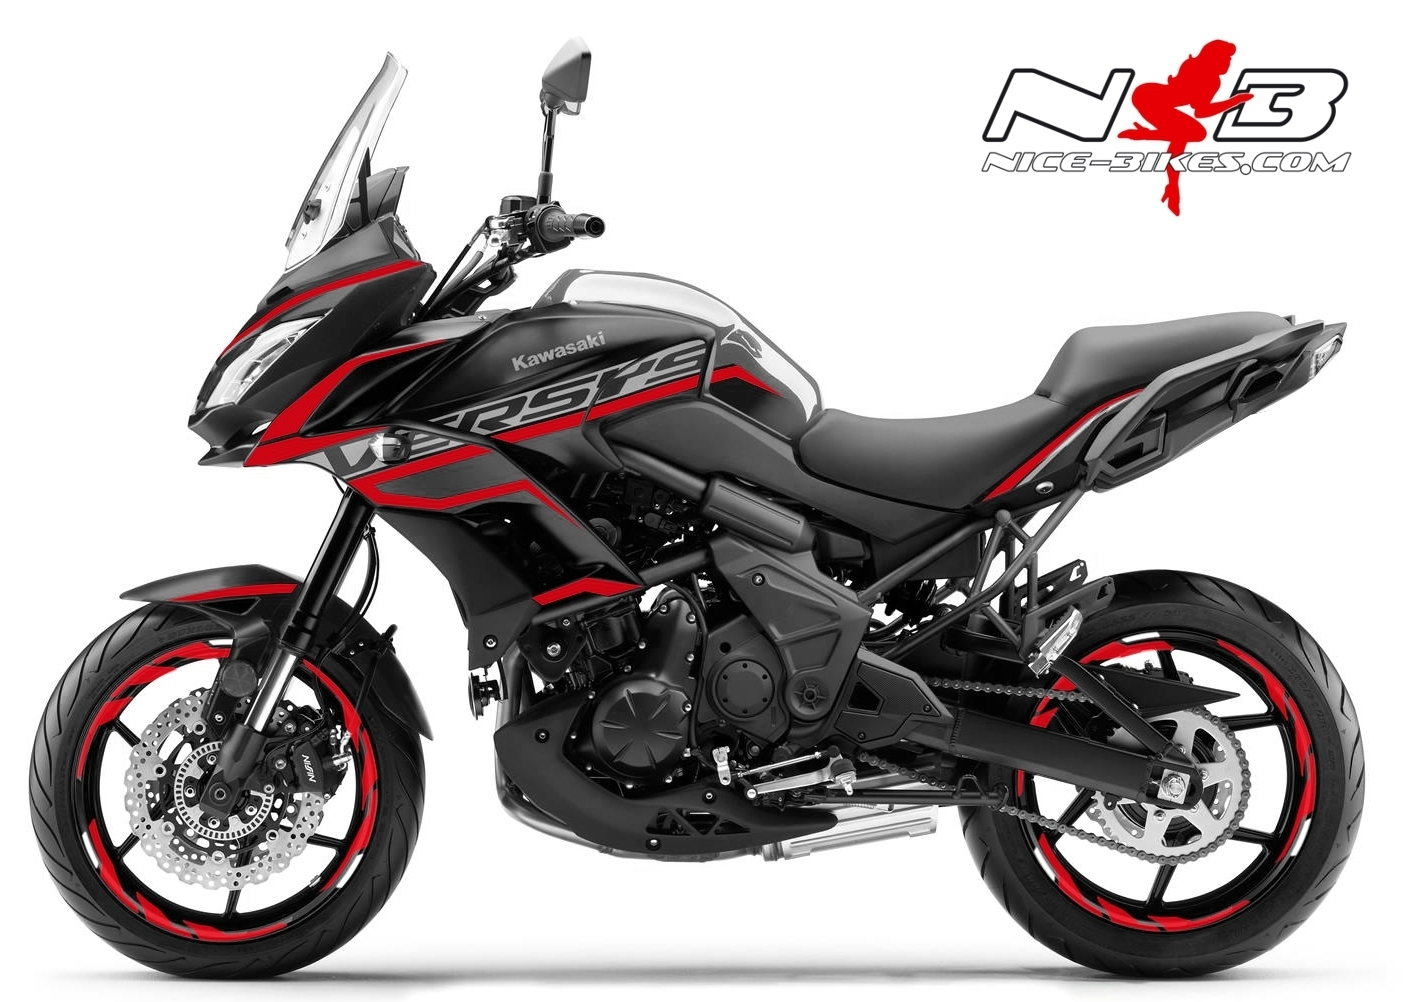 Foliendesign Kawasaki Versys 650 Bj. 2020 Racing Red